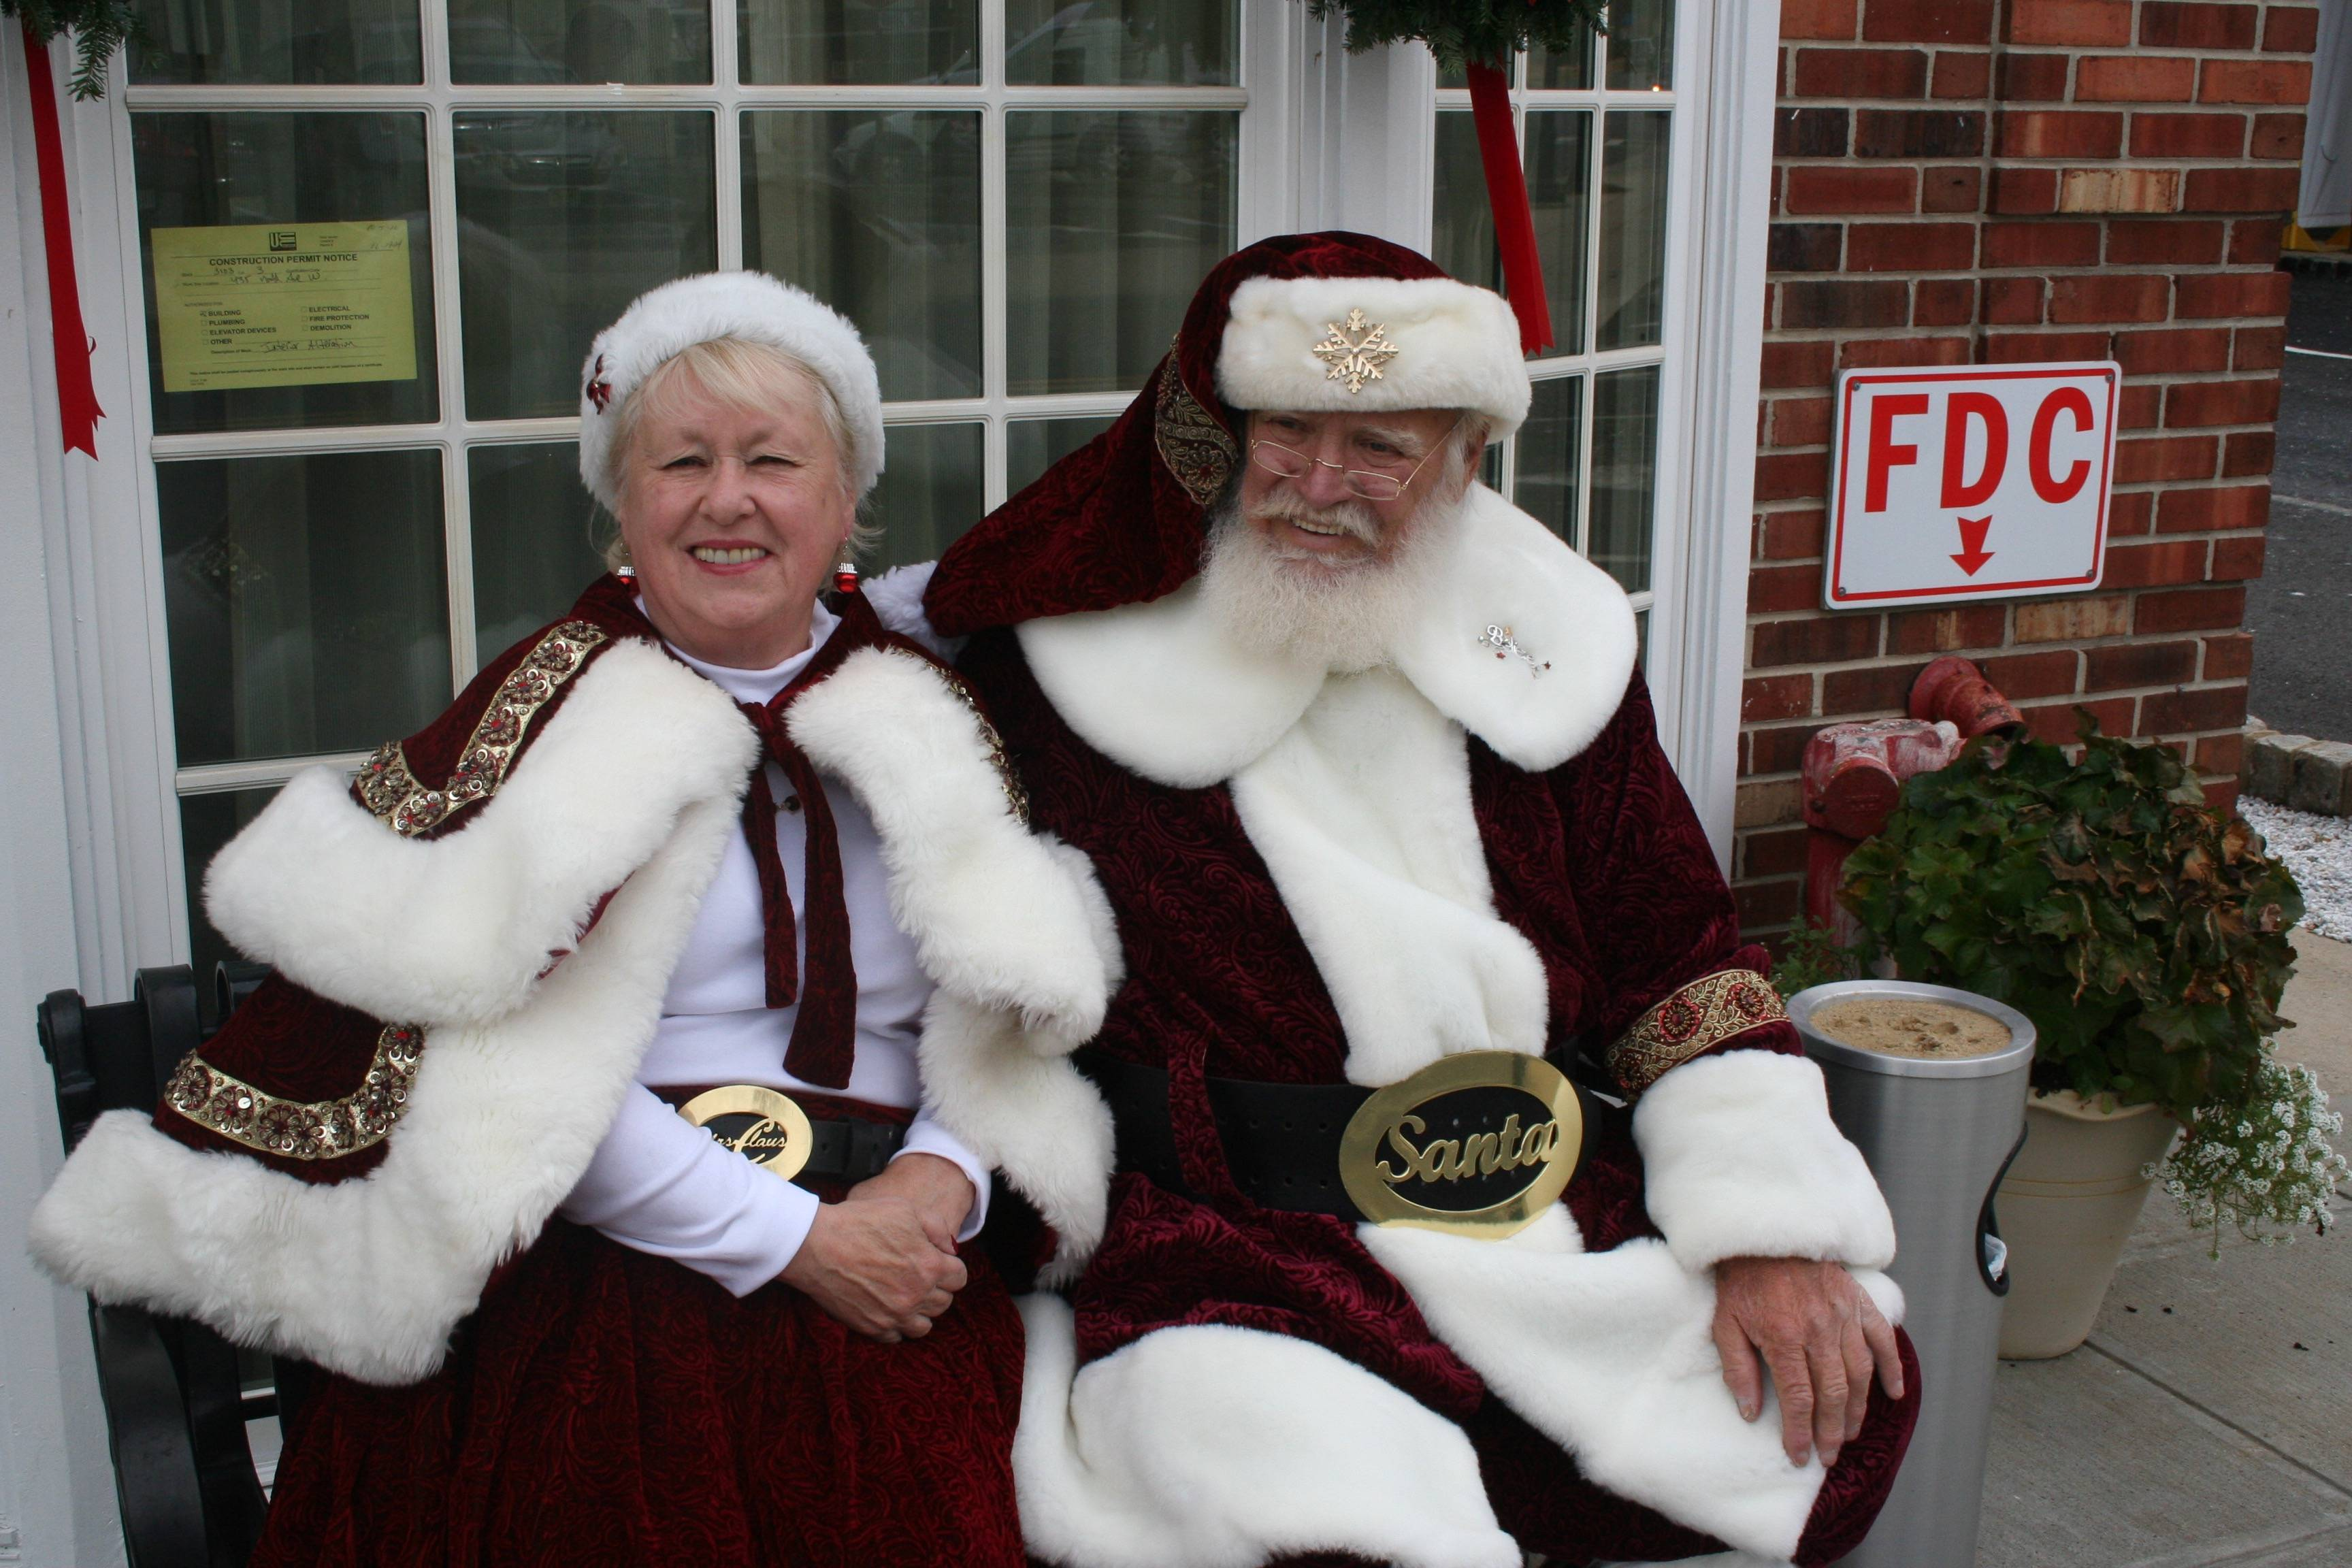 santa claus black dating site Dating offers shop garden shop they have unearthed what they say is likely the tomb of the original santa claus christians visit the site of what was thought.